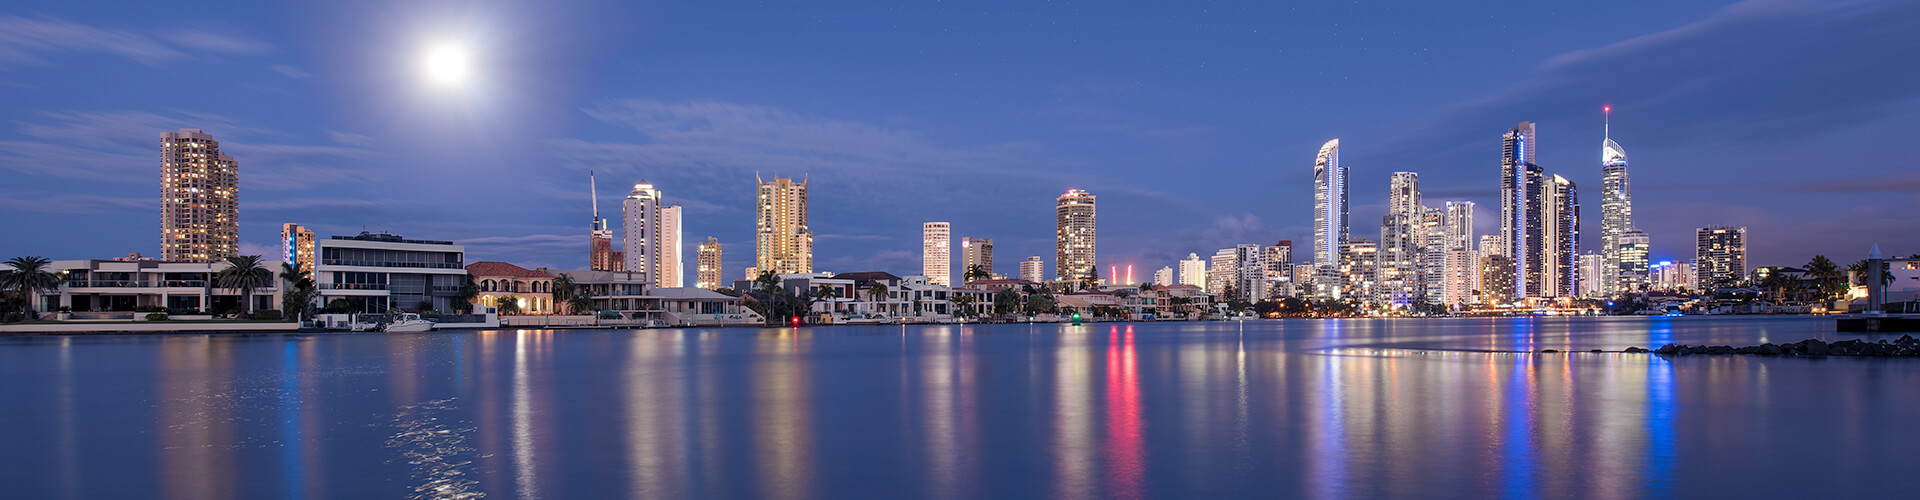 surfers paradise overlooking canals